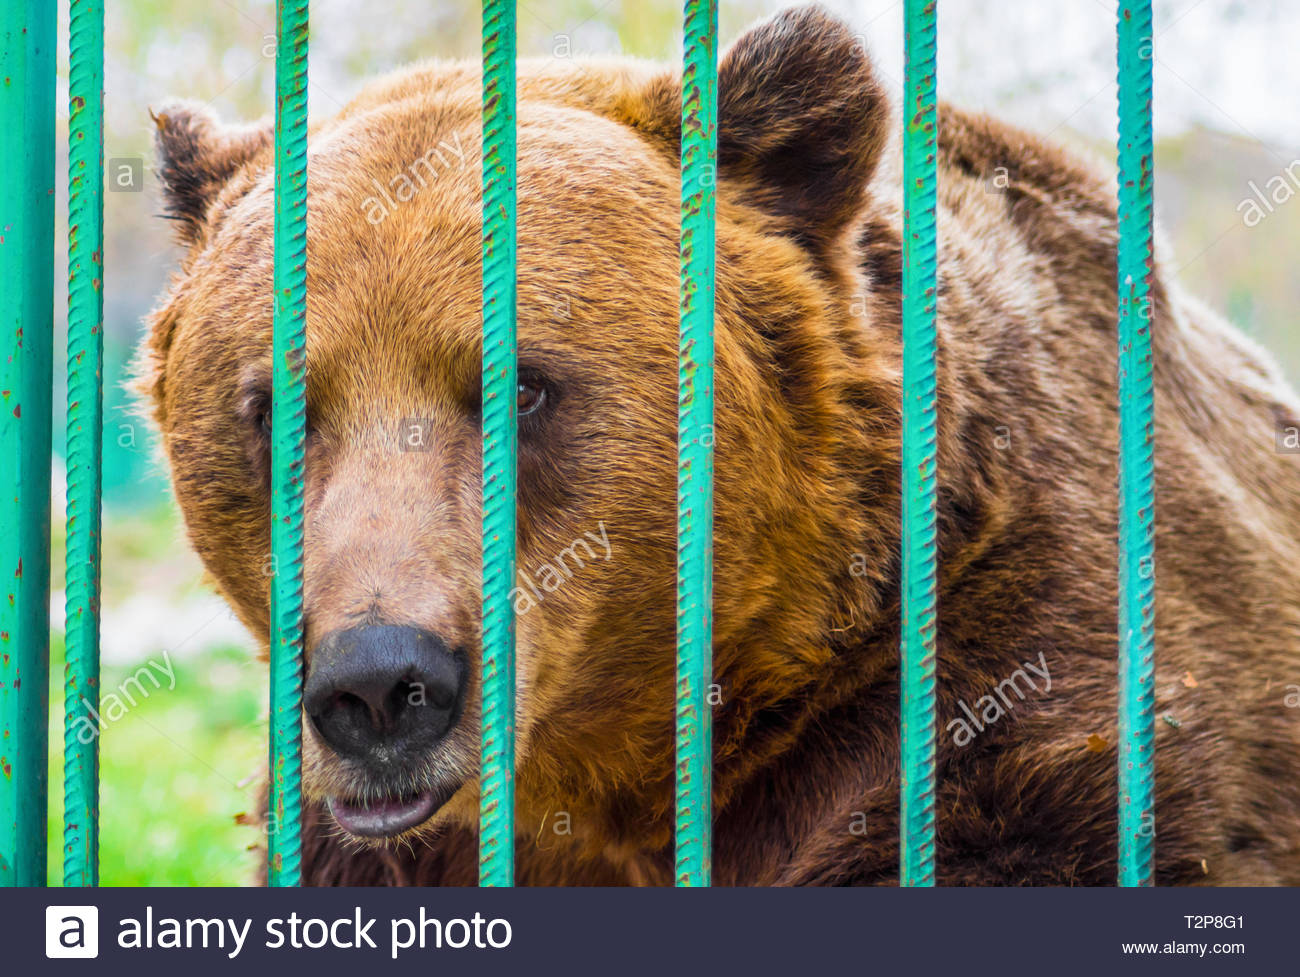 Sad brown bear looking through the bars of a cage in the zoo. Concept of abuse, cruelty, animal rights and captivity. - Stock Image